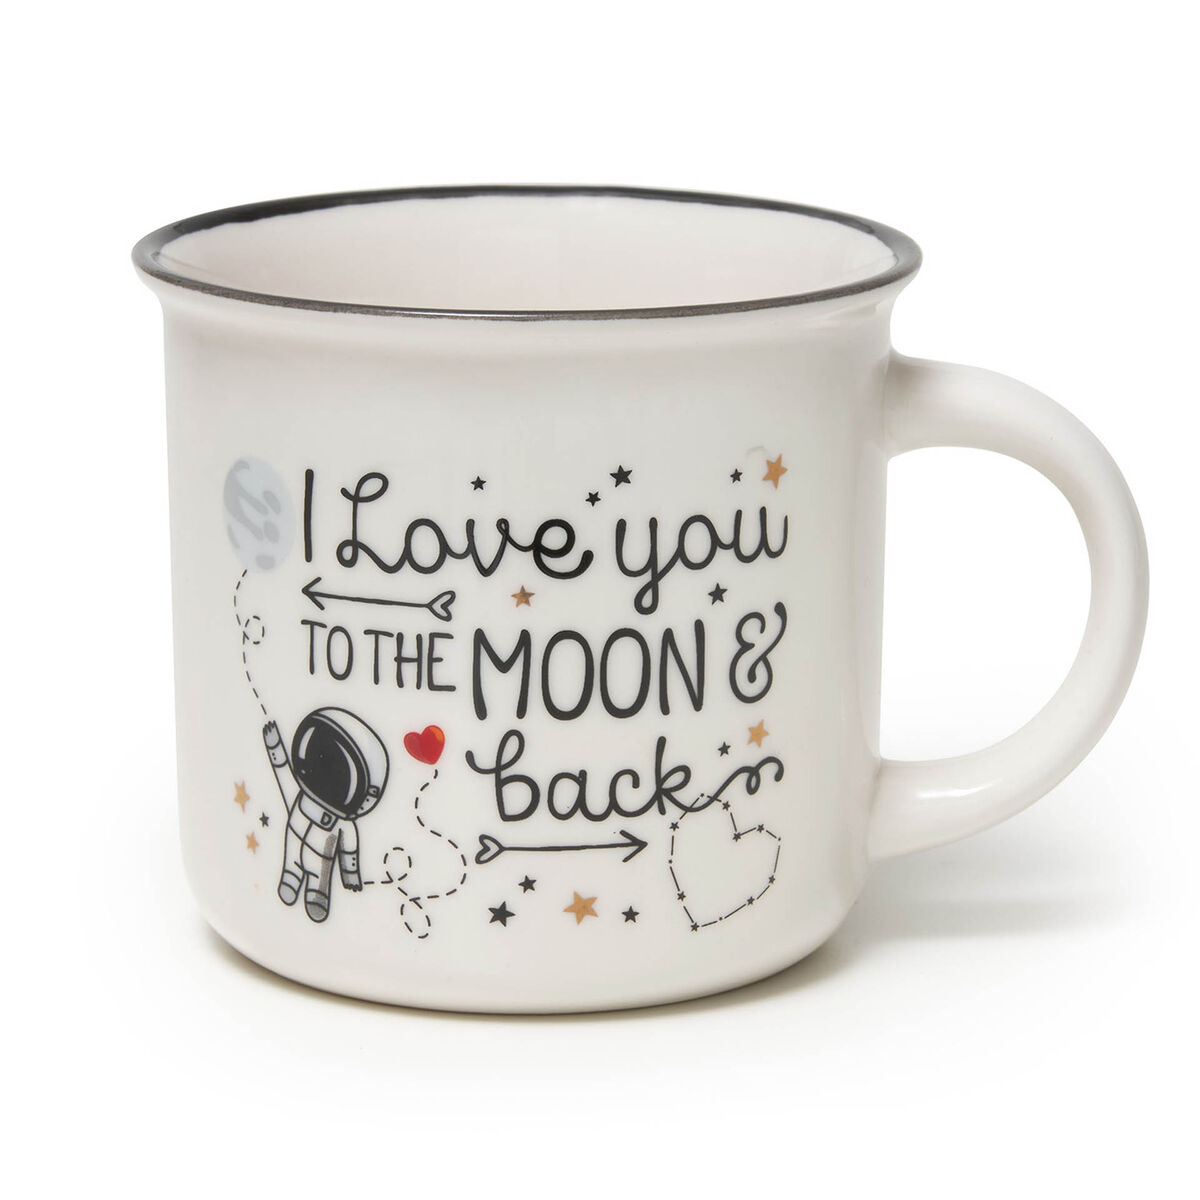 Take a break - Cup-Puccino - Porcelain Mug, , zoo